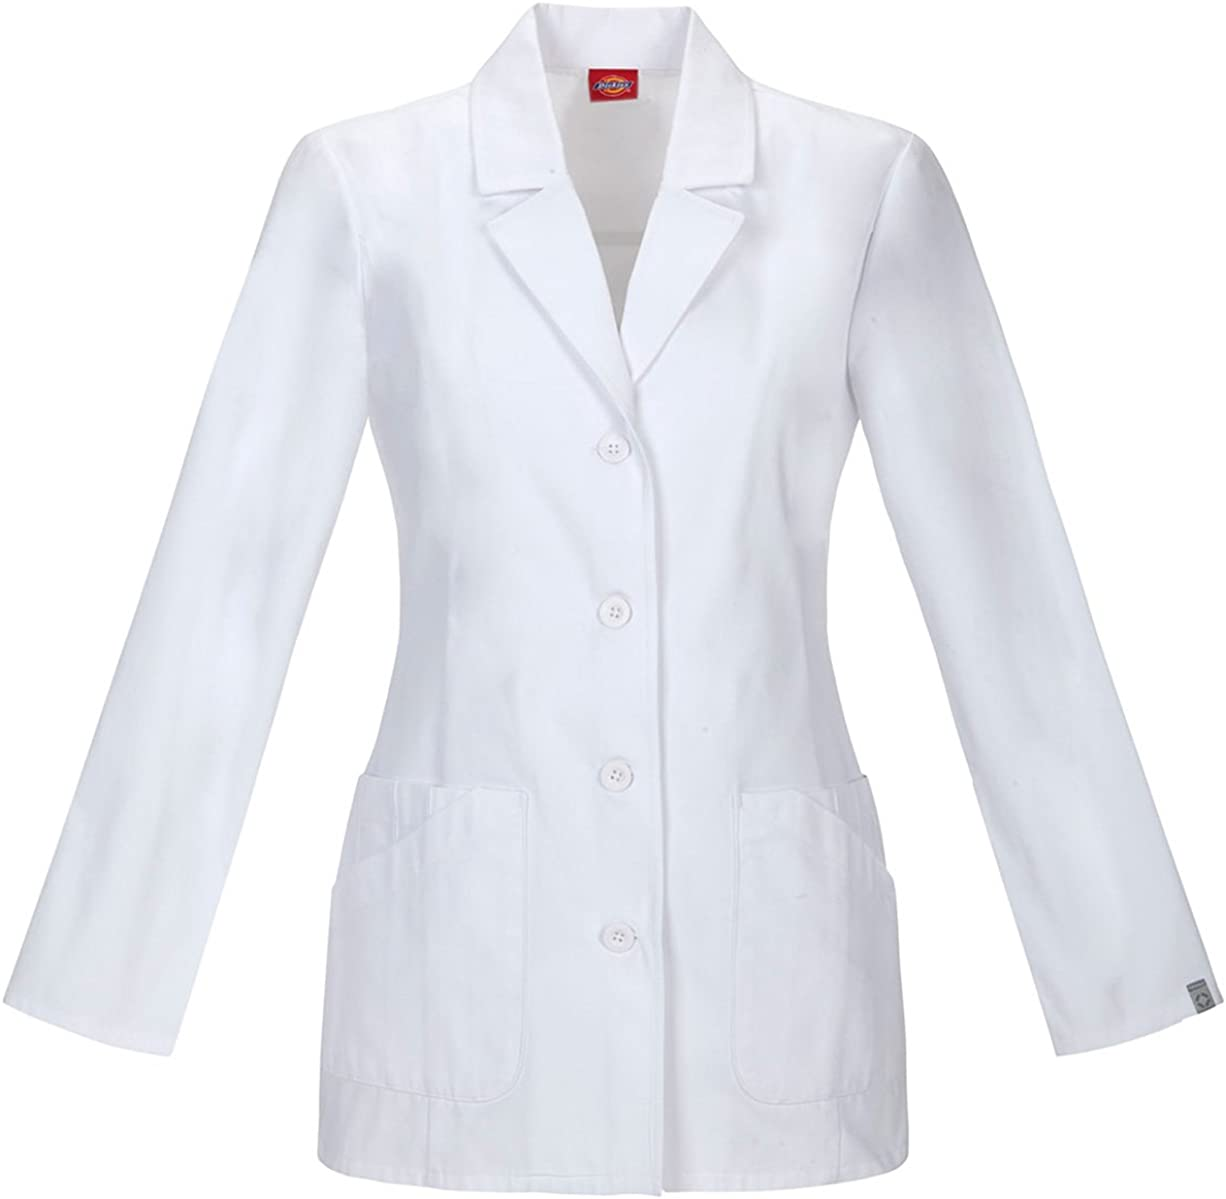 Dickies Women's 29 Inch Alternative 25% OFF dealer Lab Coat SILVADUR White Treated with L